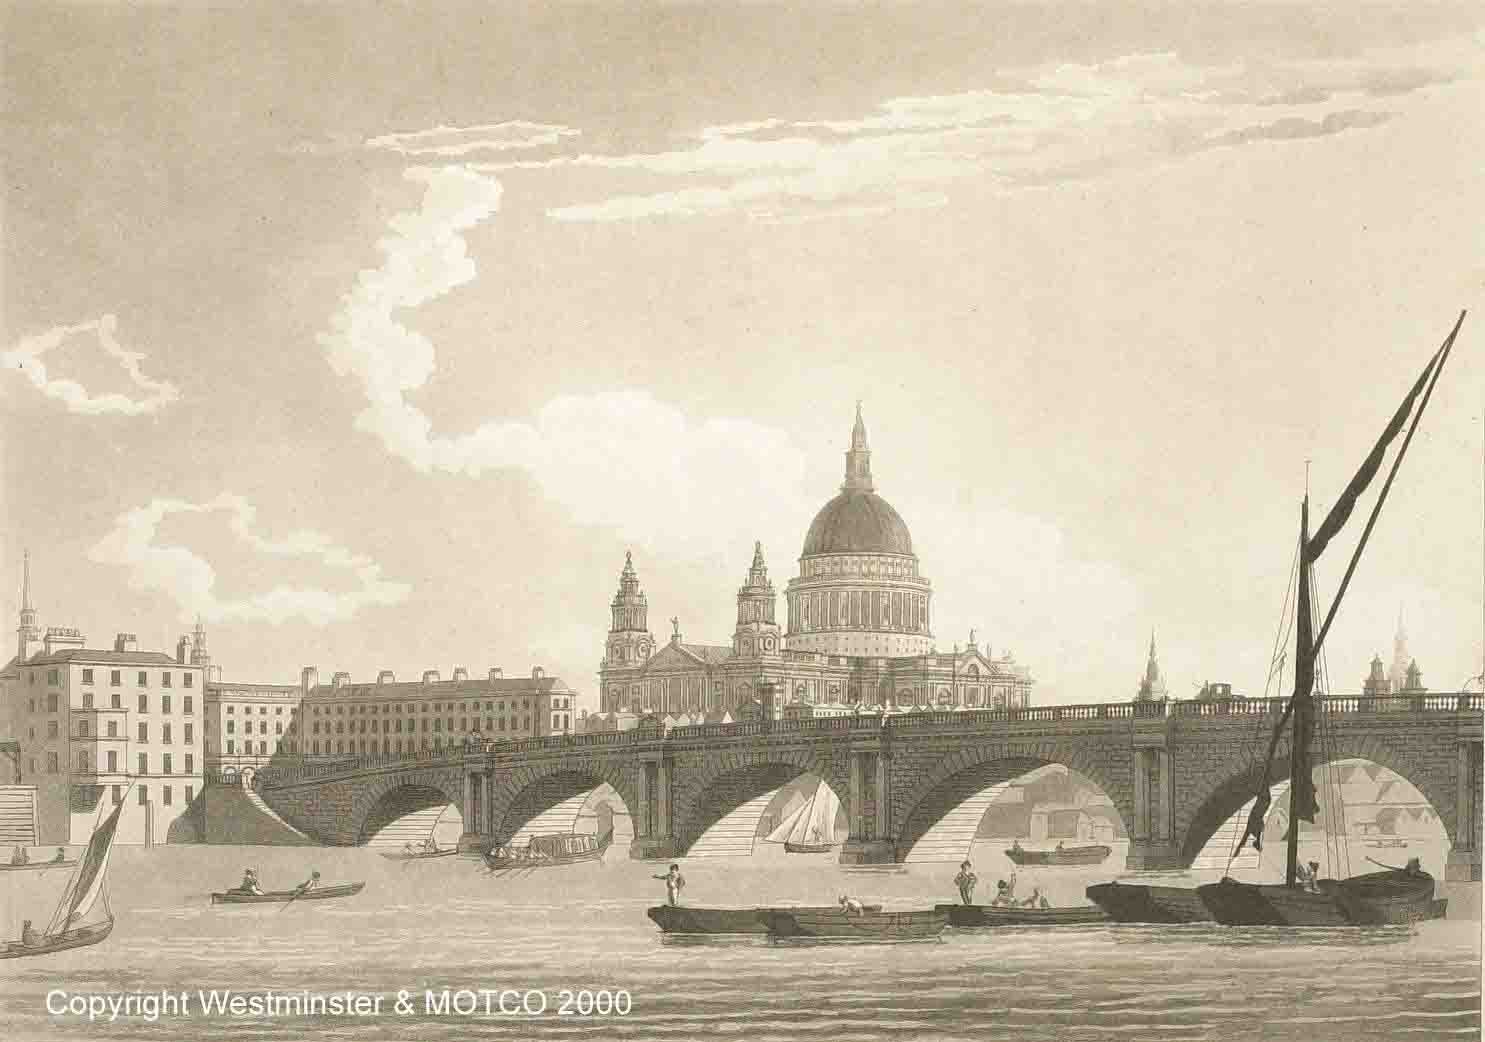 Blackfriars Bridge © MOTCO